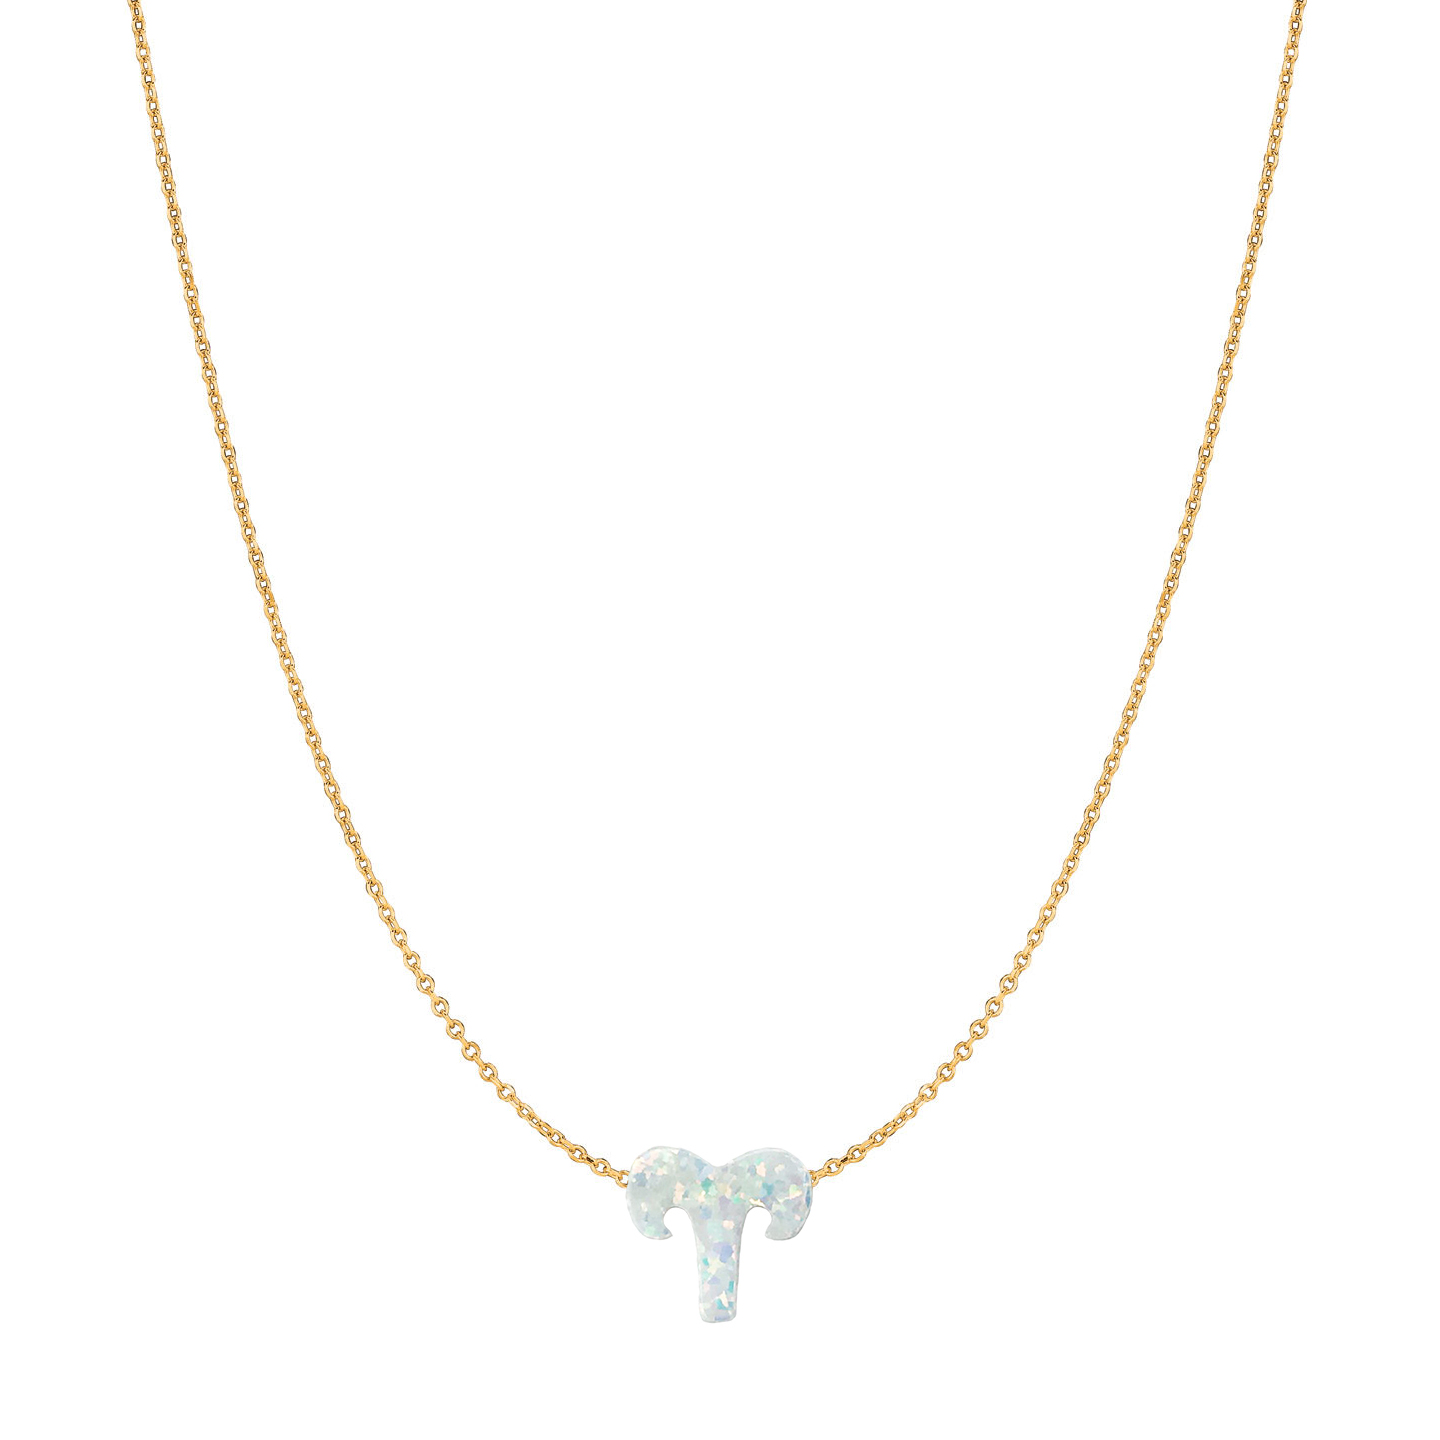 14 Karat Gold Pure White Opal Zodiac Sign Necklace